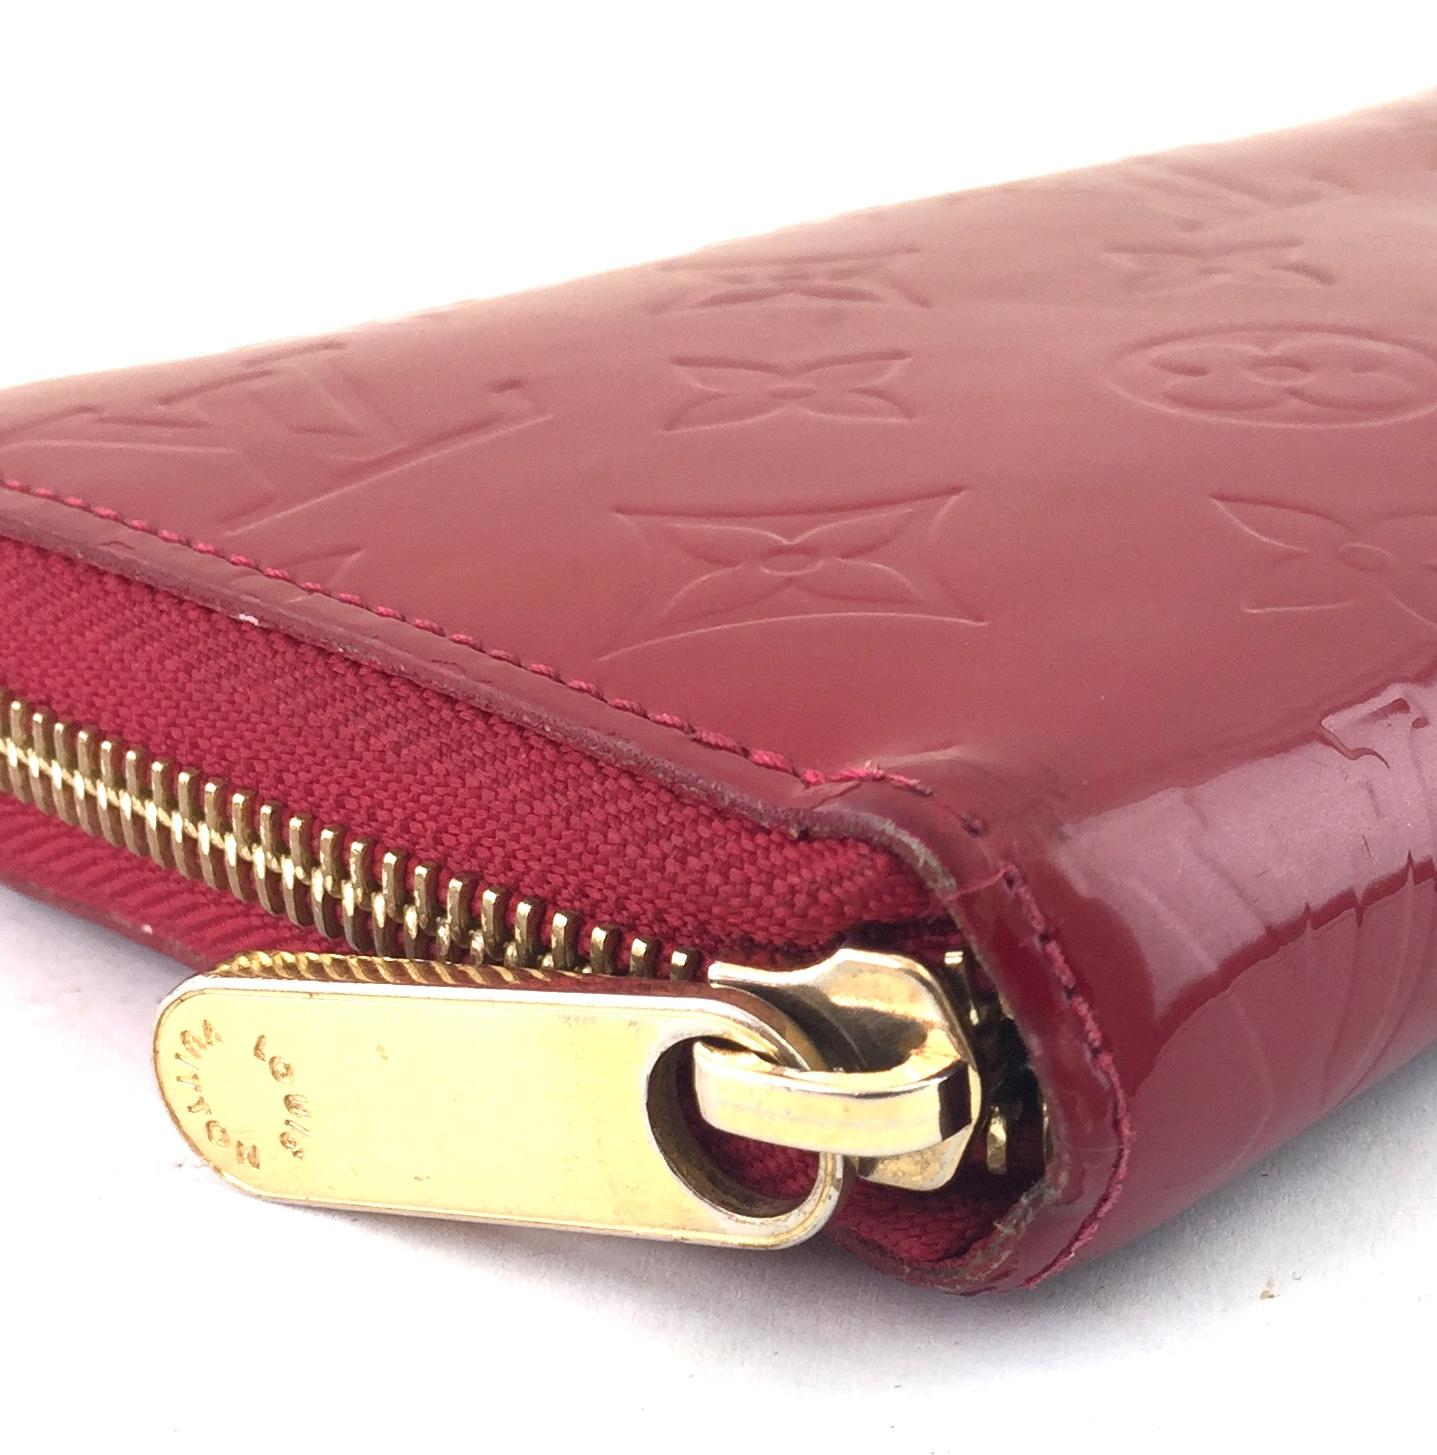 louis vuitton #16820 red monogram vernis zippy long zip